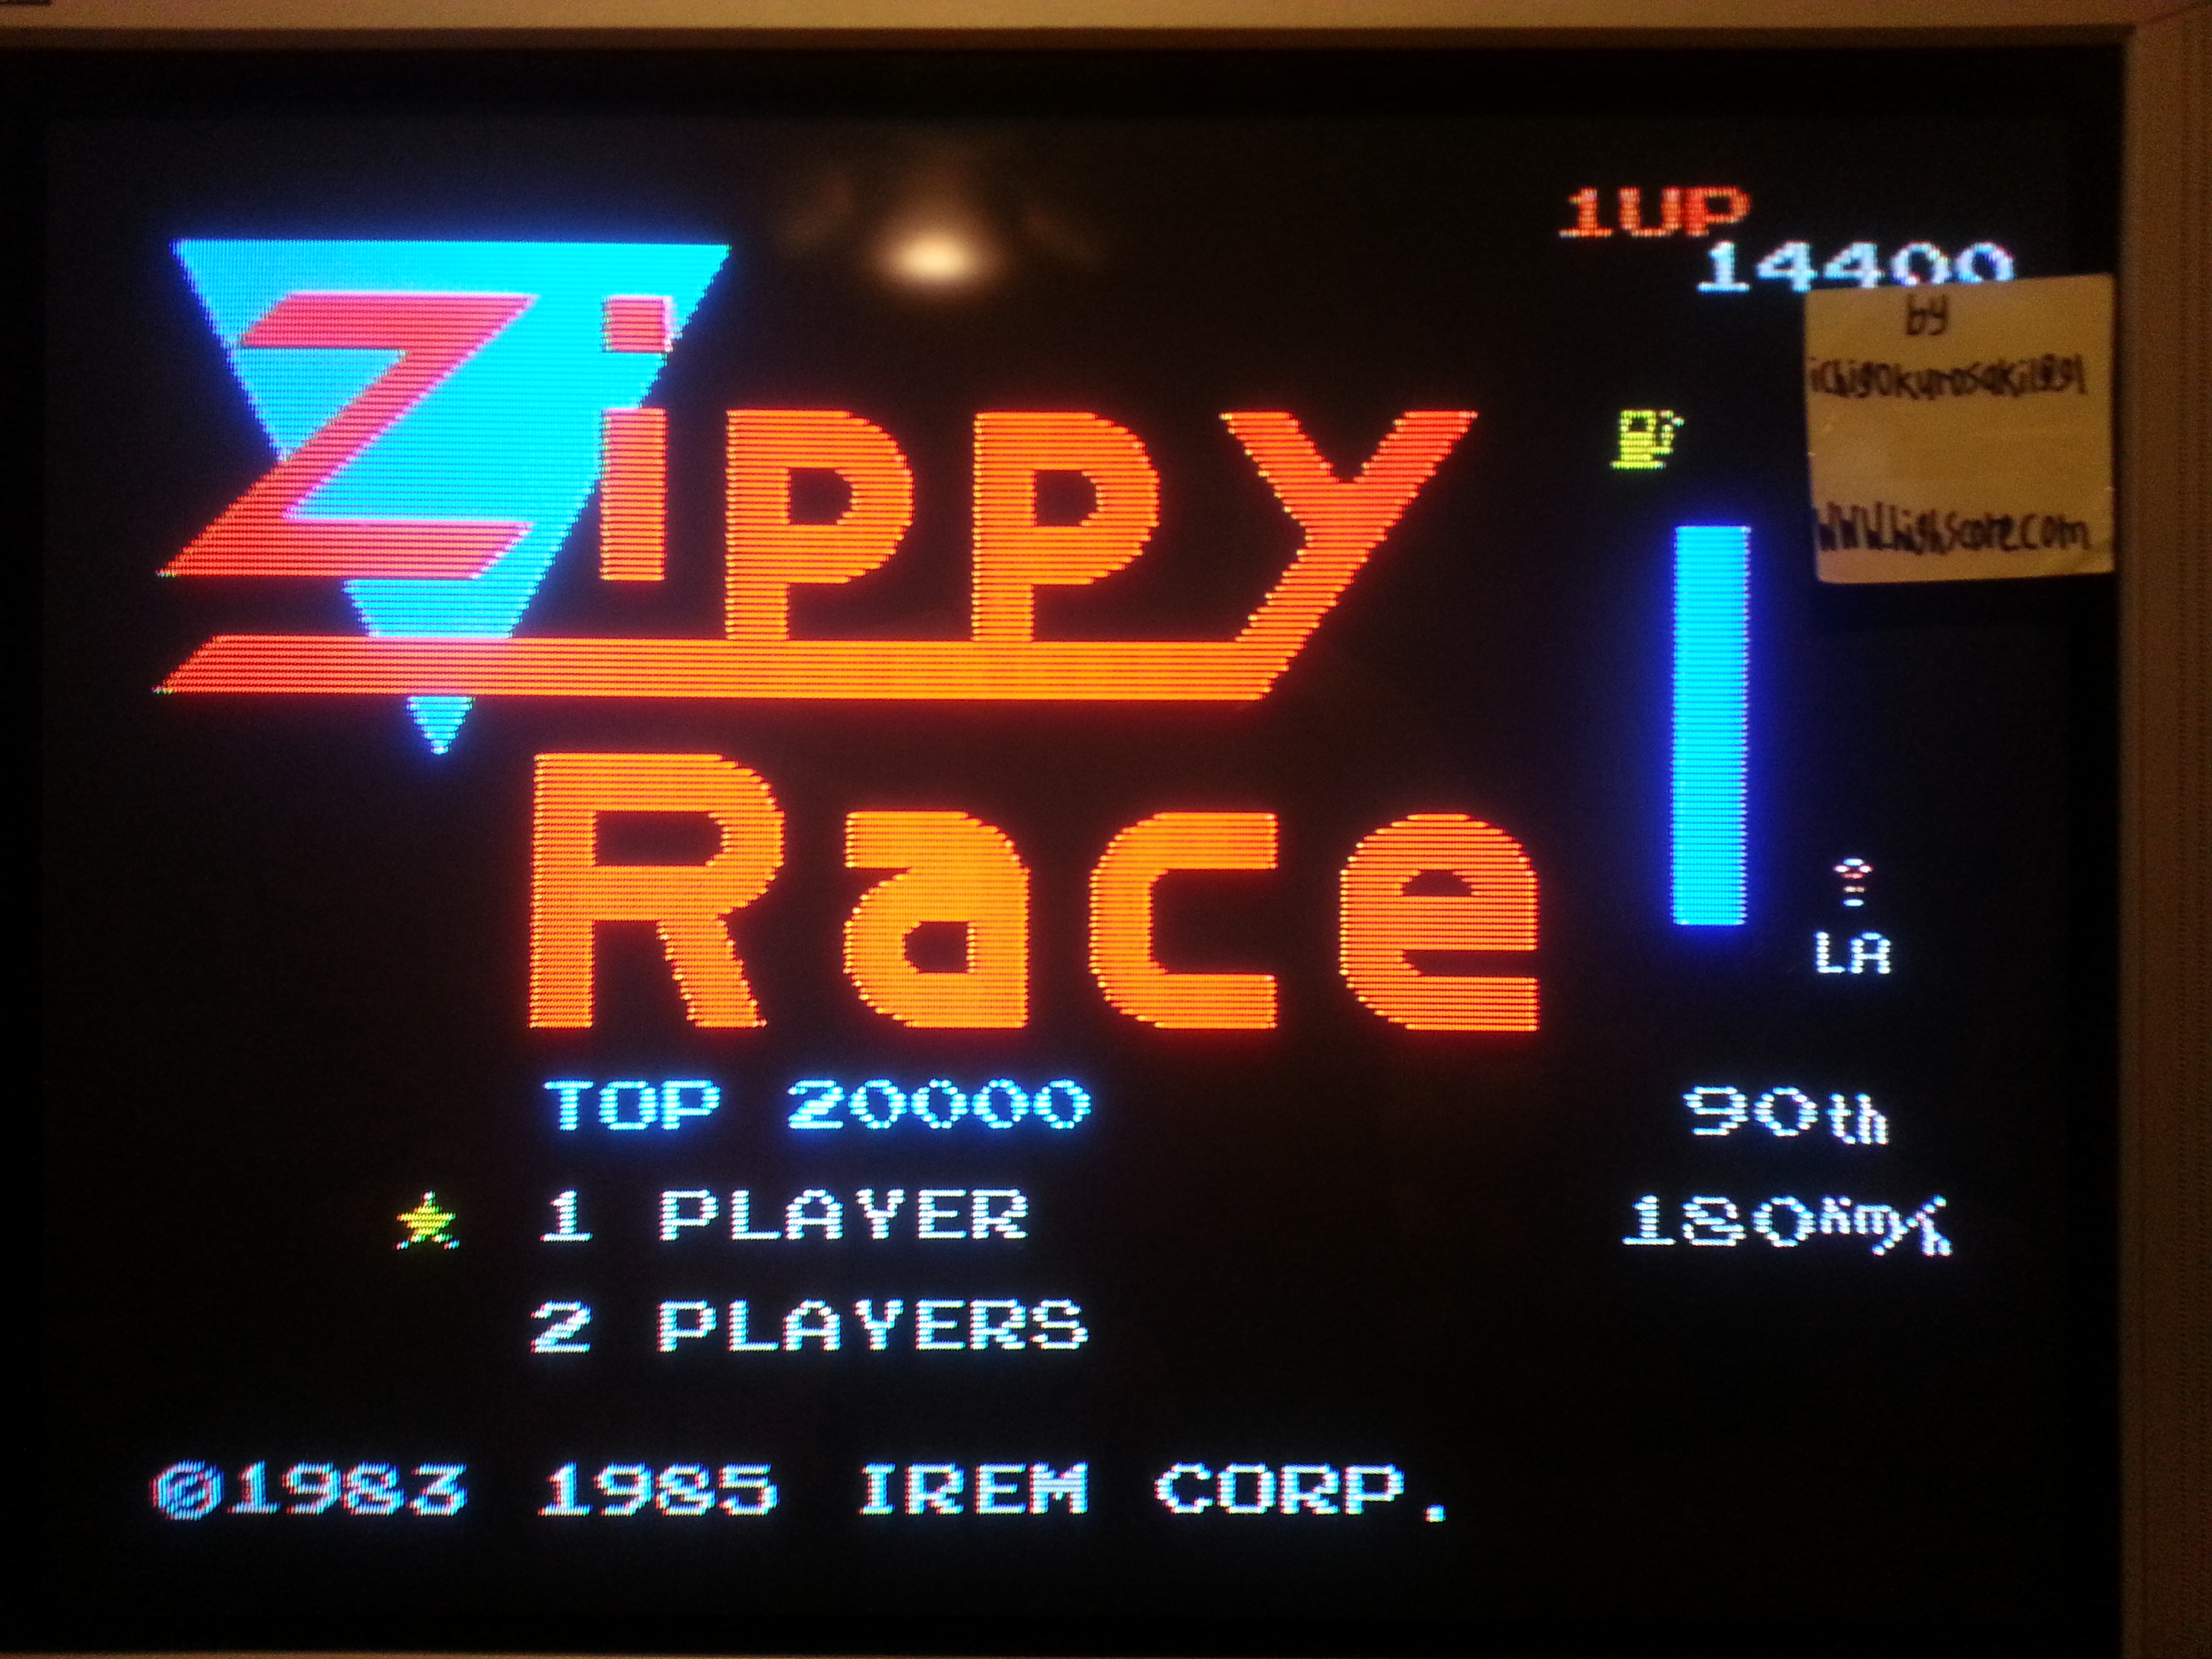 Zippy Race / MotoRace U.S.A. 14,400 points